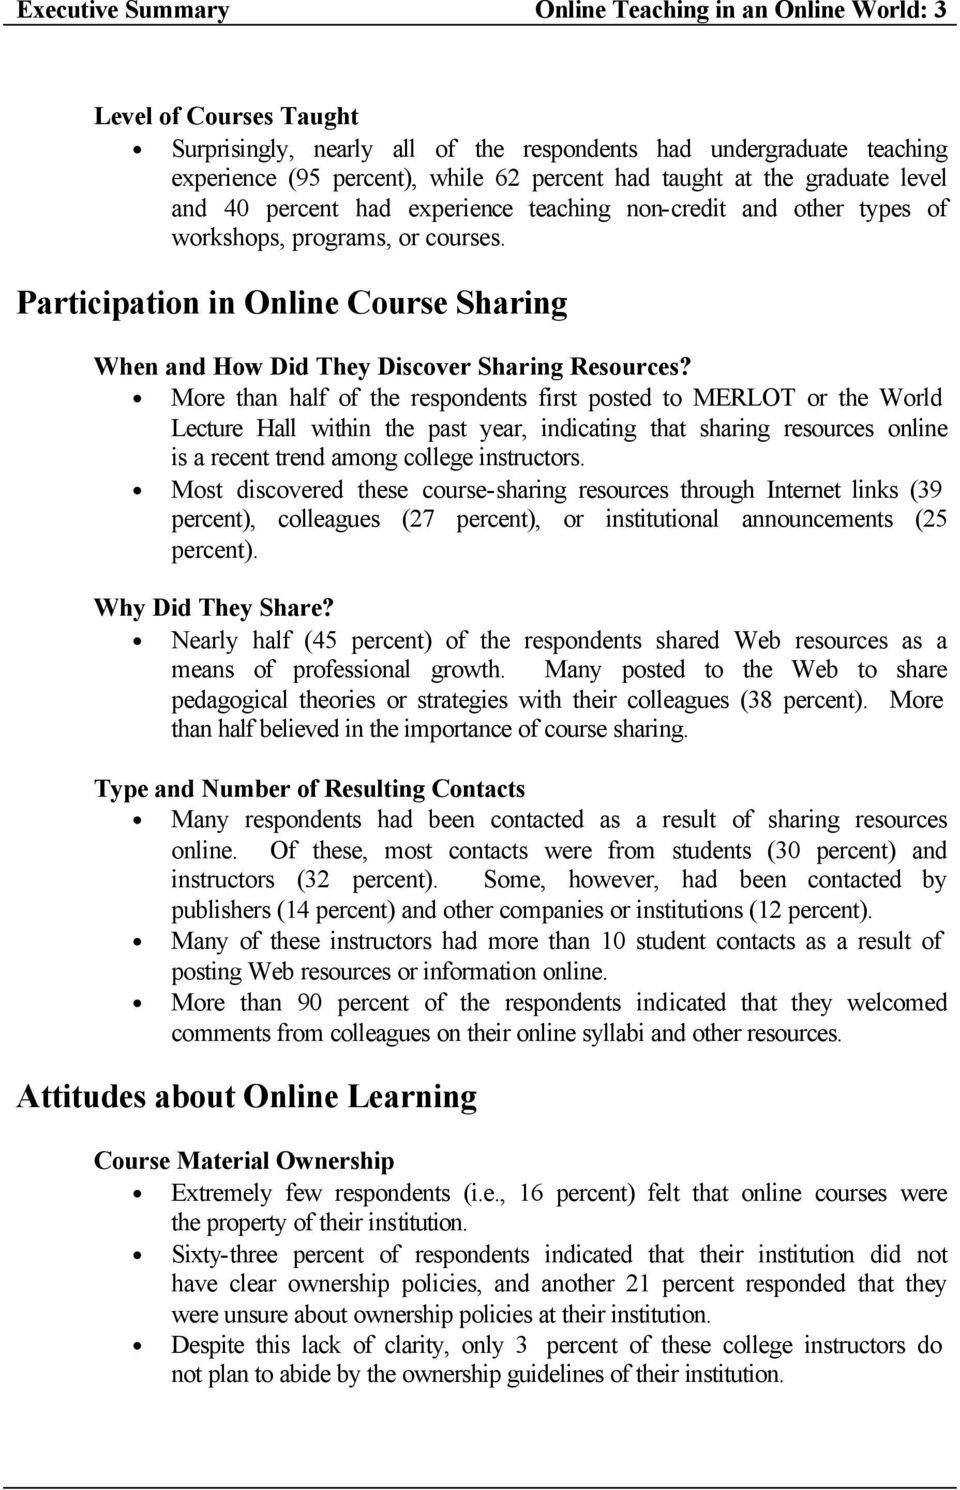 Participation in Online Course Sharing When and How Did They Discover Sharing Resources?